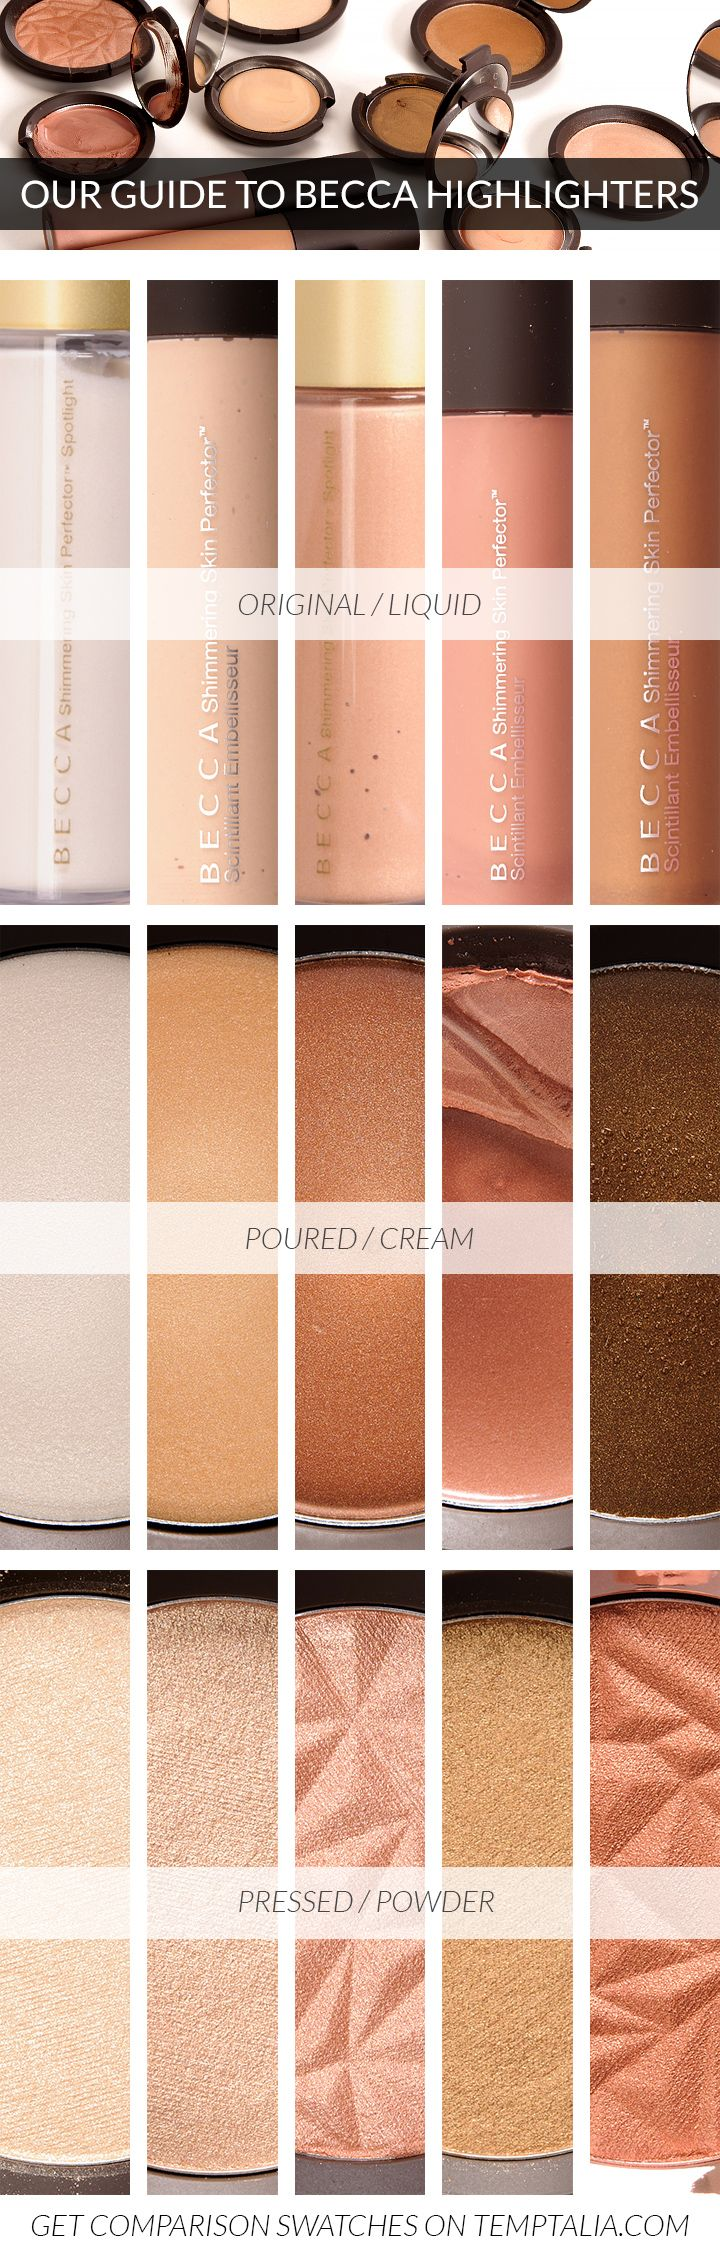 Get your glow with Becca highlighters at Ulta Beauty.